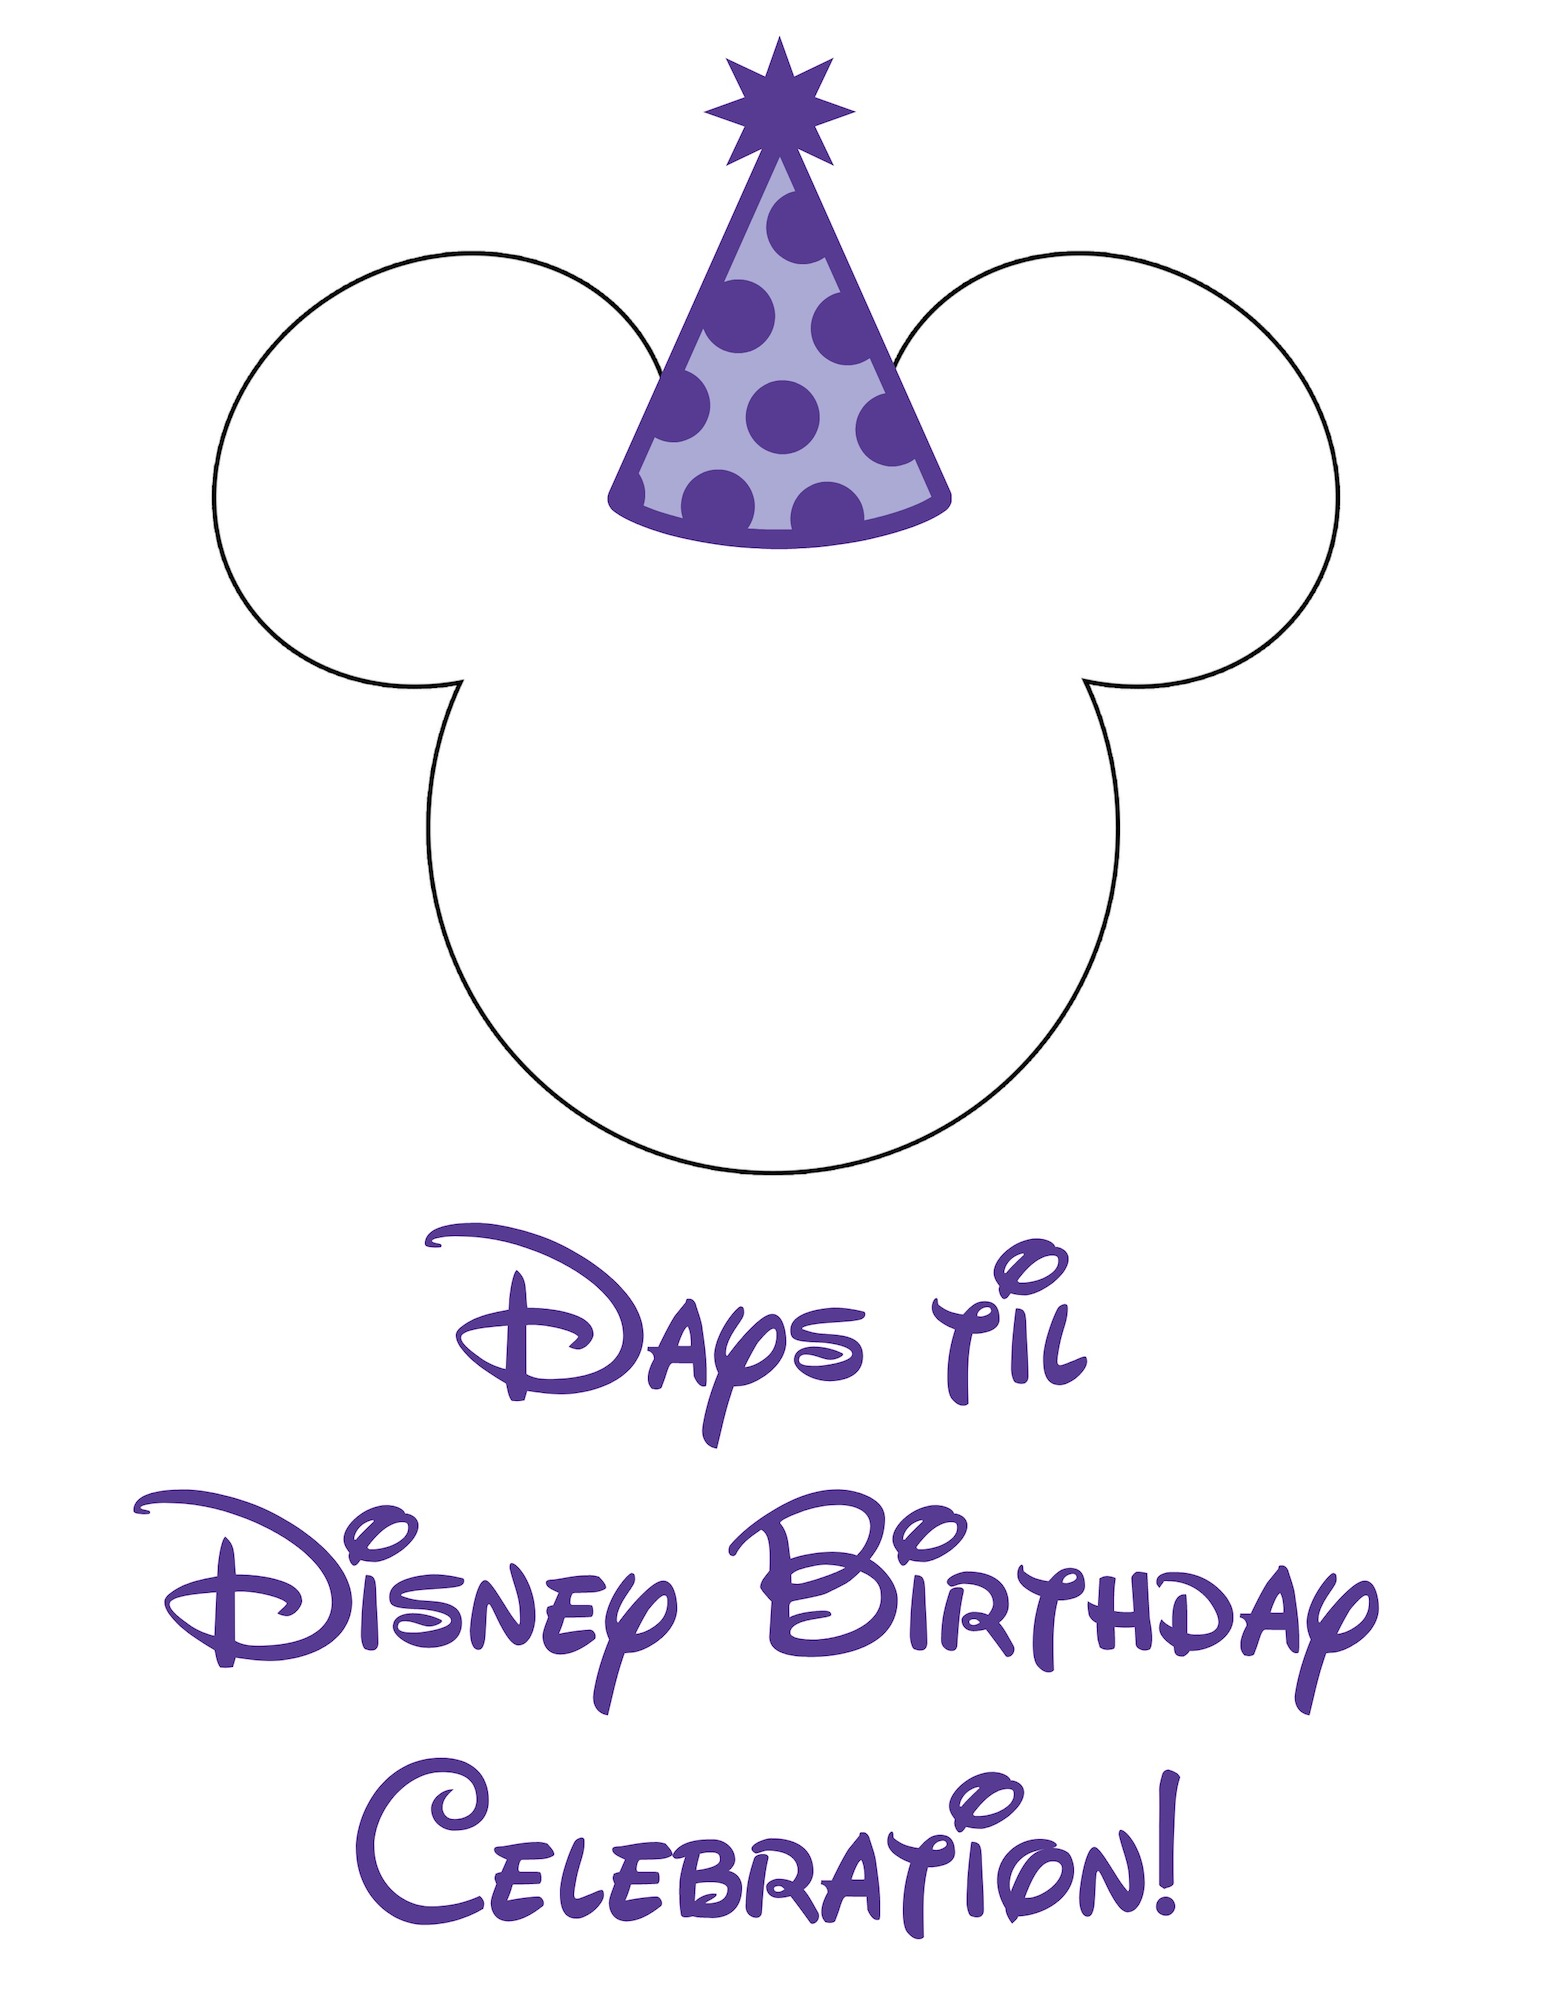 graphic about Disney Countdown Printable known as No cost Disney World-wide Countdown Printable - Lifetime. Spouse and children. Contentment